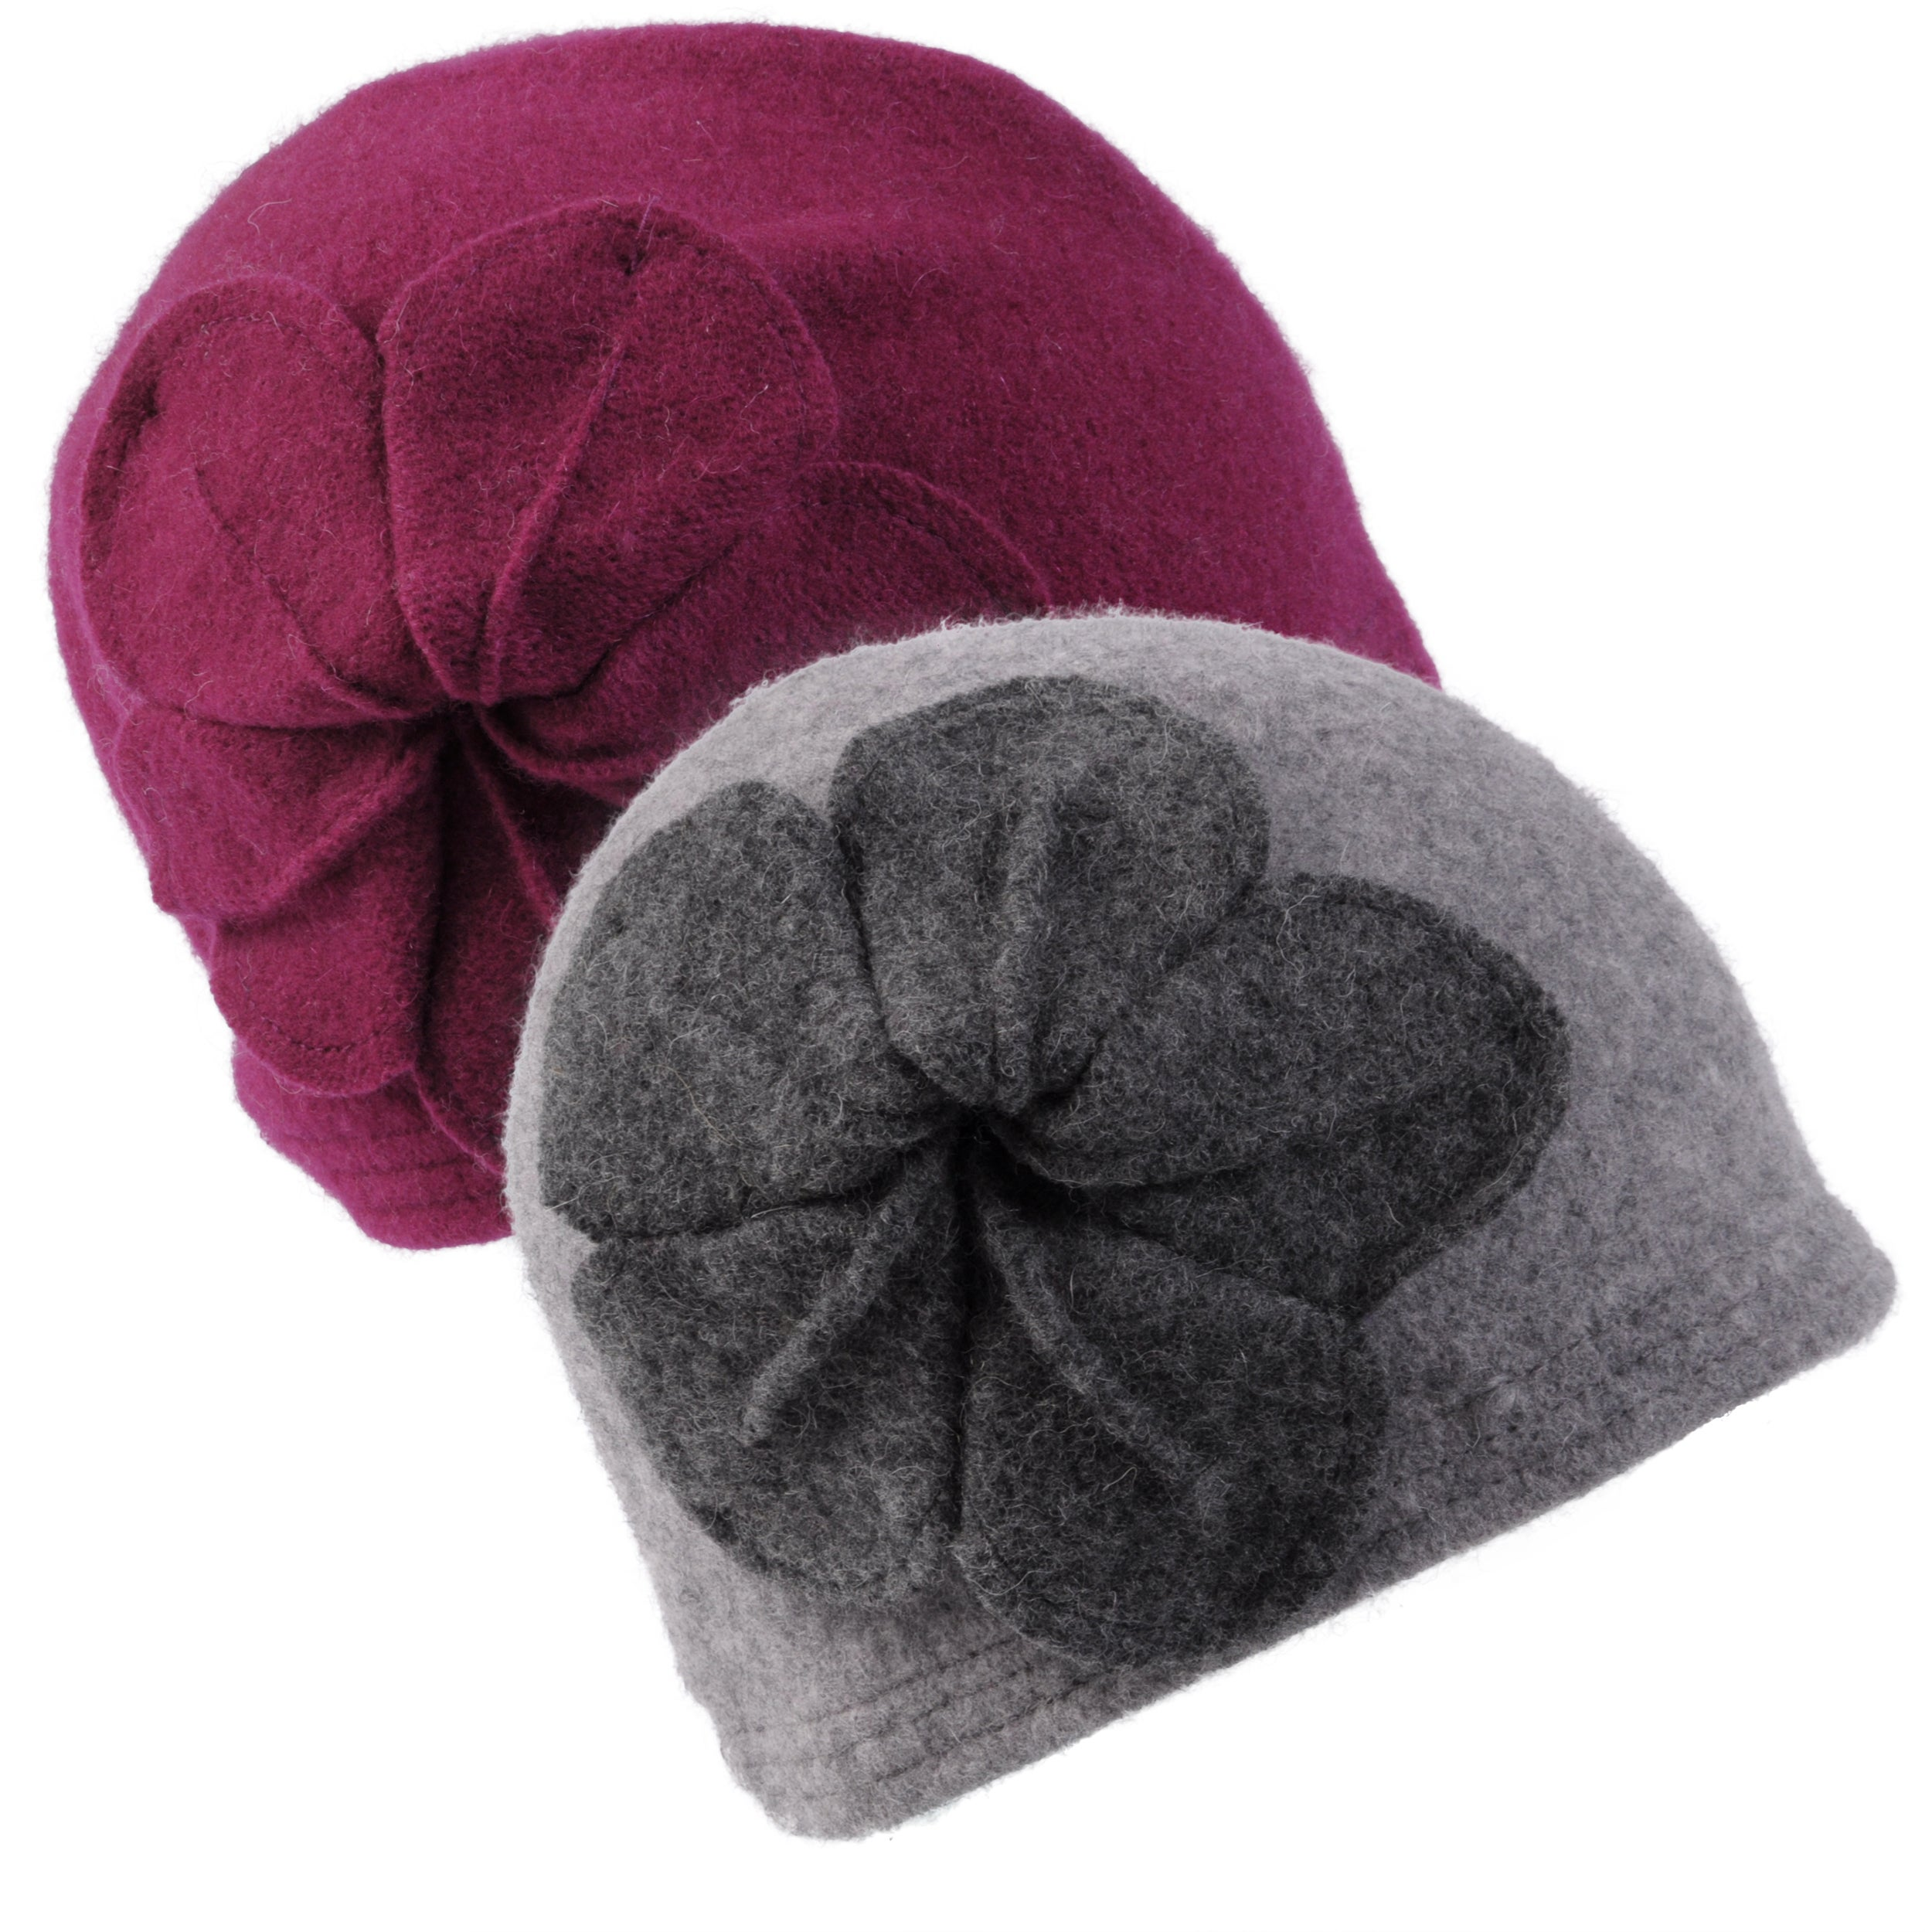 Journee Collection Women's Wool Flower Accent Bucket Hat